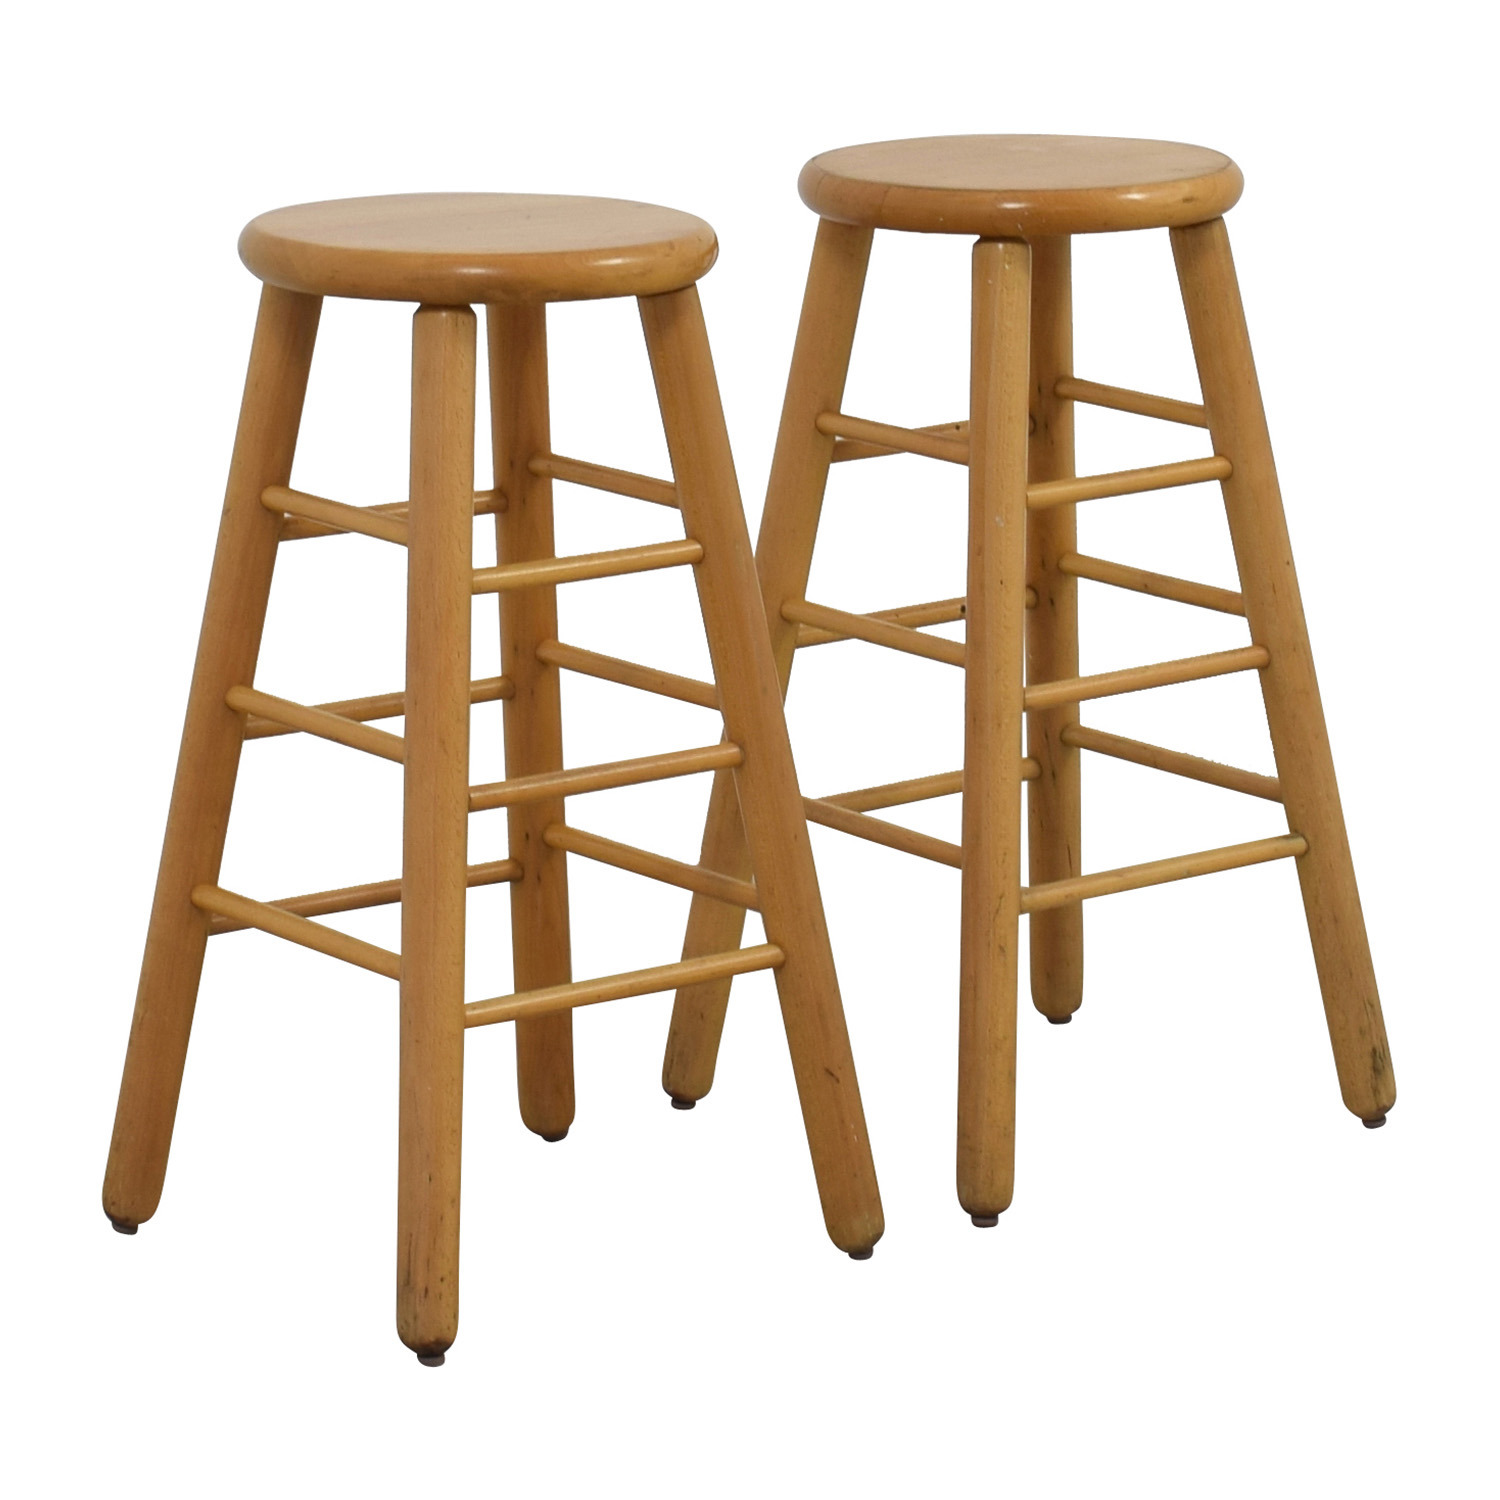 stool chair second hand dining room 83 off wood bar stools chairs